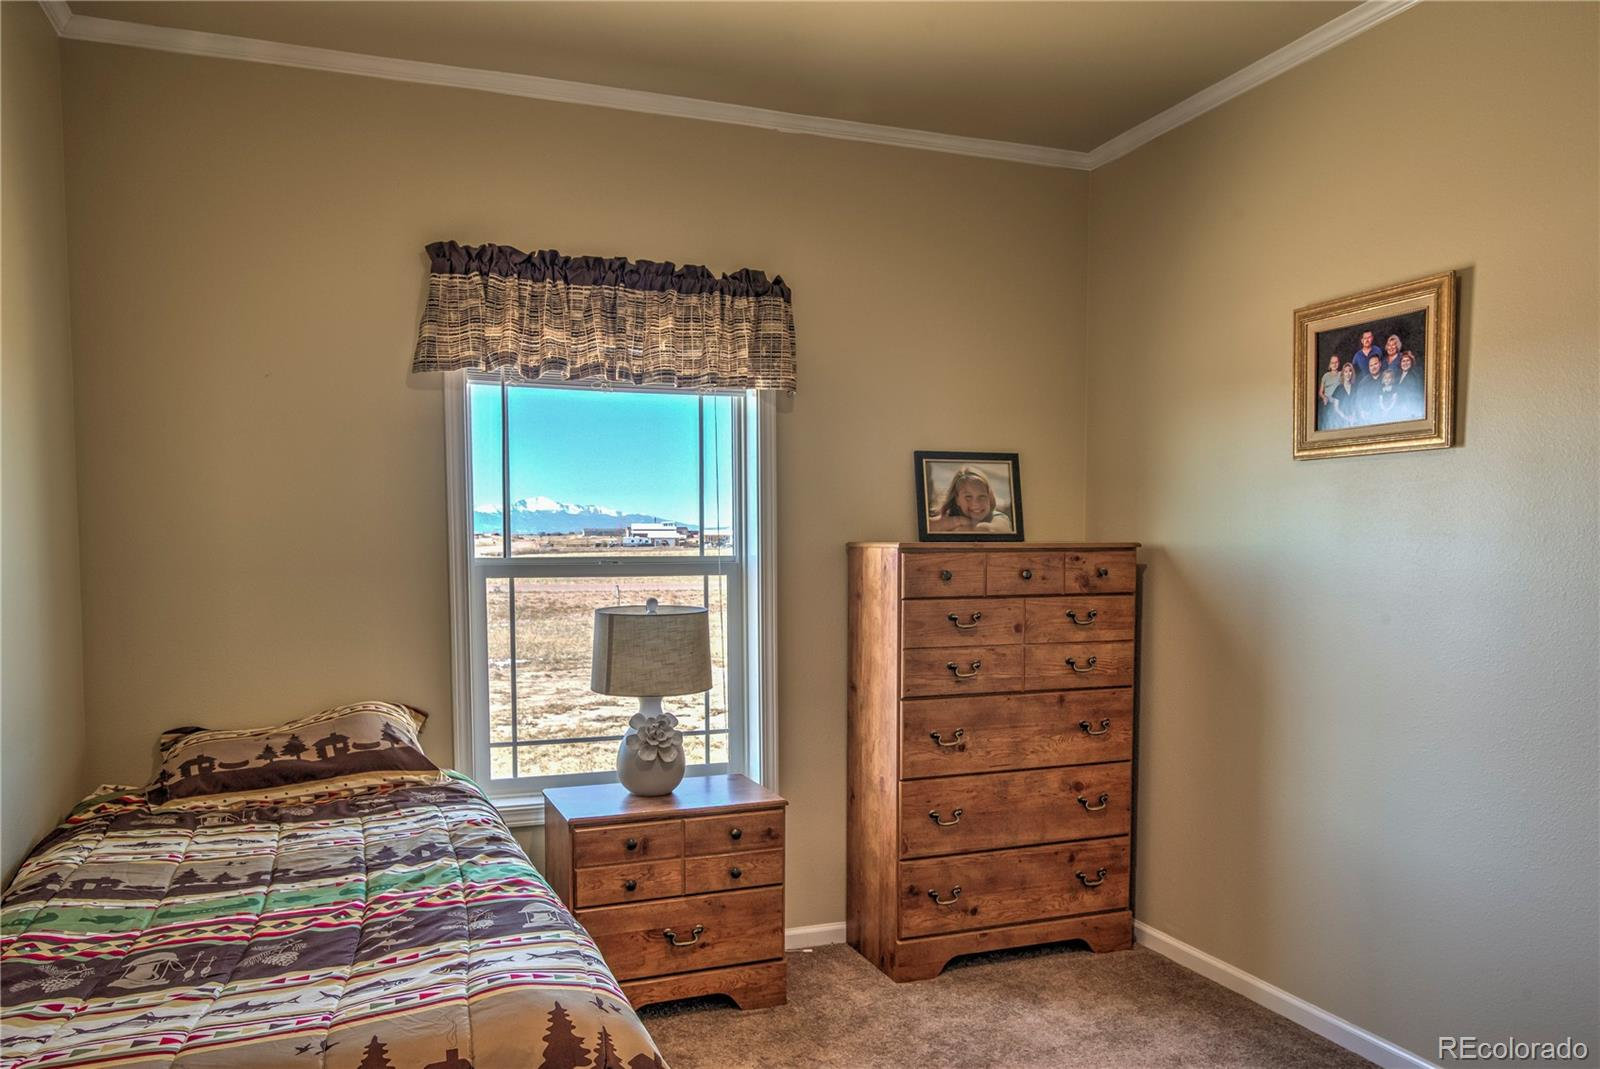 MLS# 8441040 - 21 - 595 Spotted Owl Way, Calhan, CO 80808